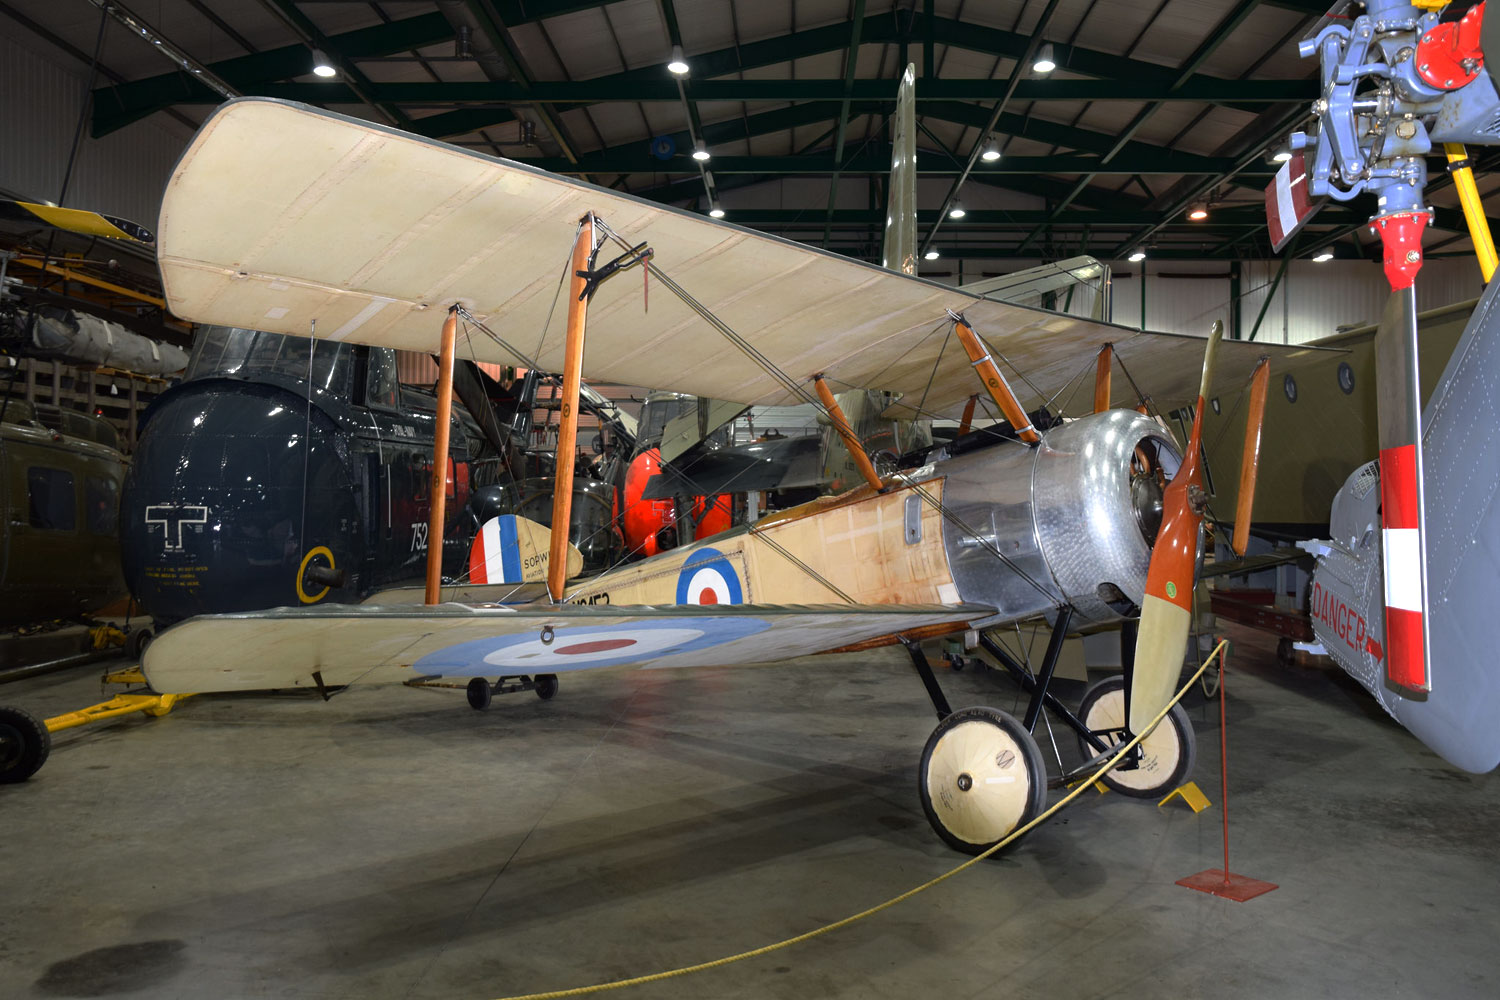 photograph of small military biplane in air hangar surrounded by other aircraft